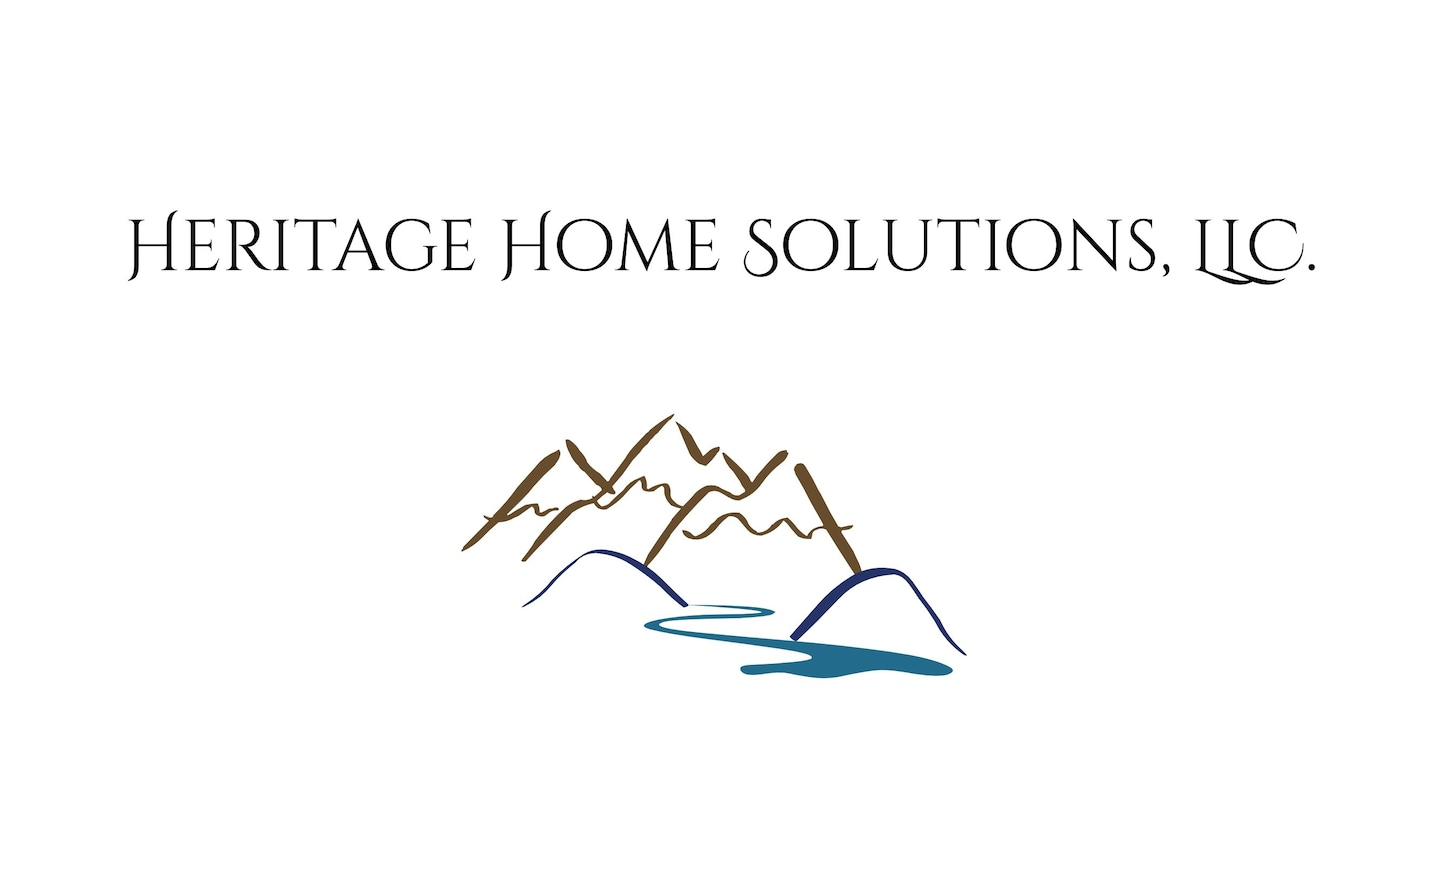 Heritage Home Solutions, LLC. logo